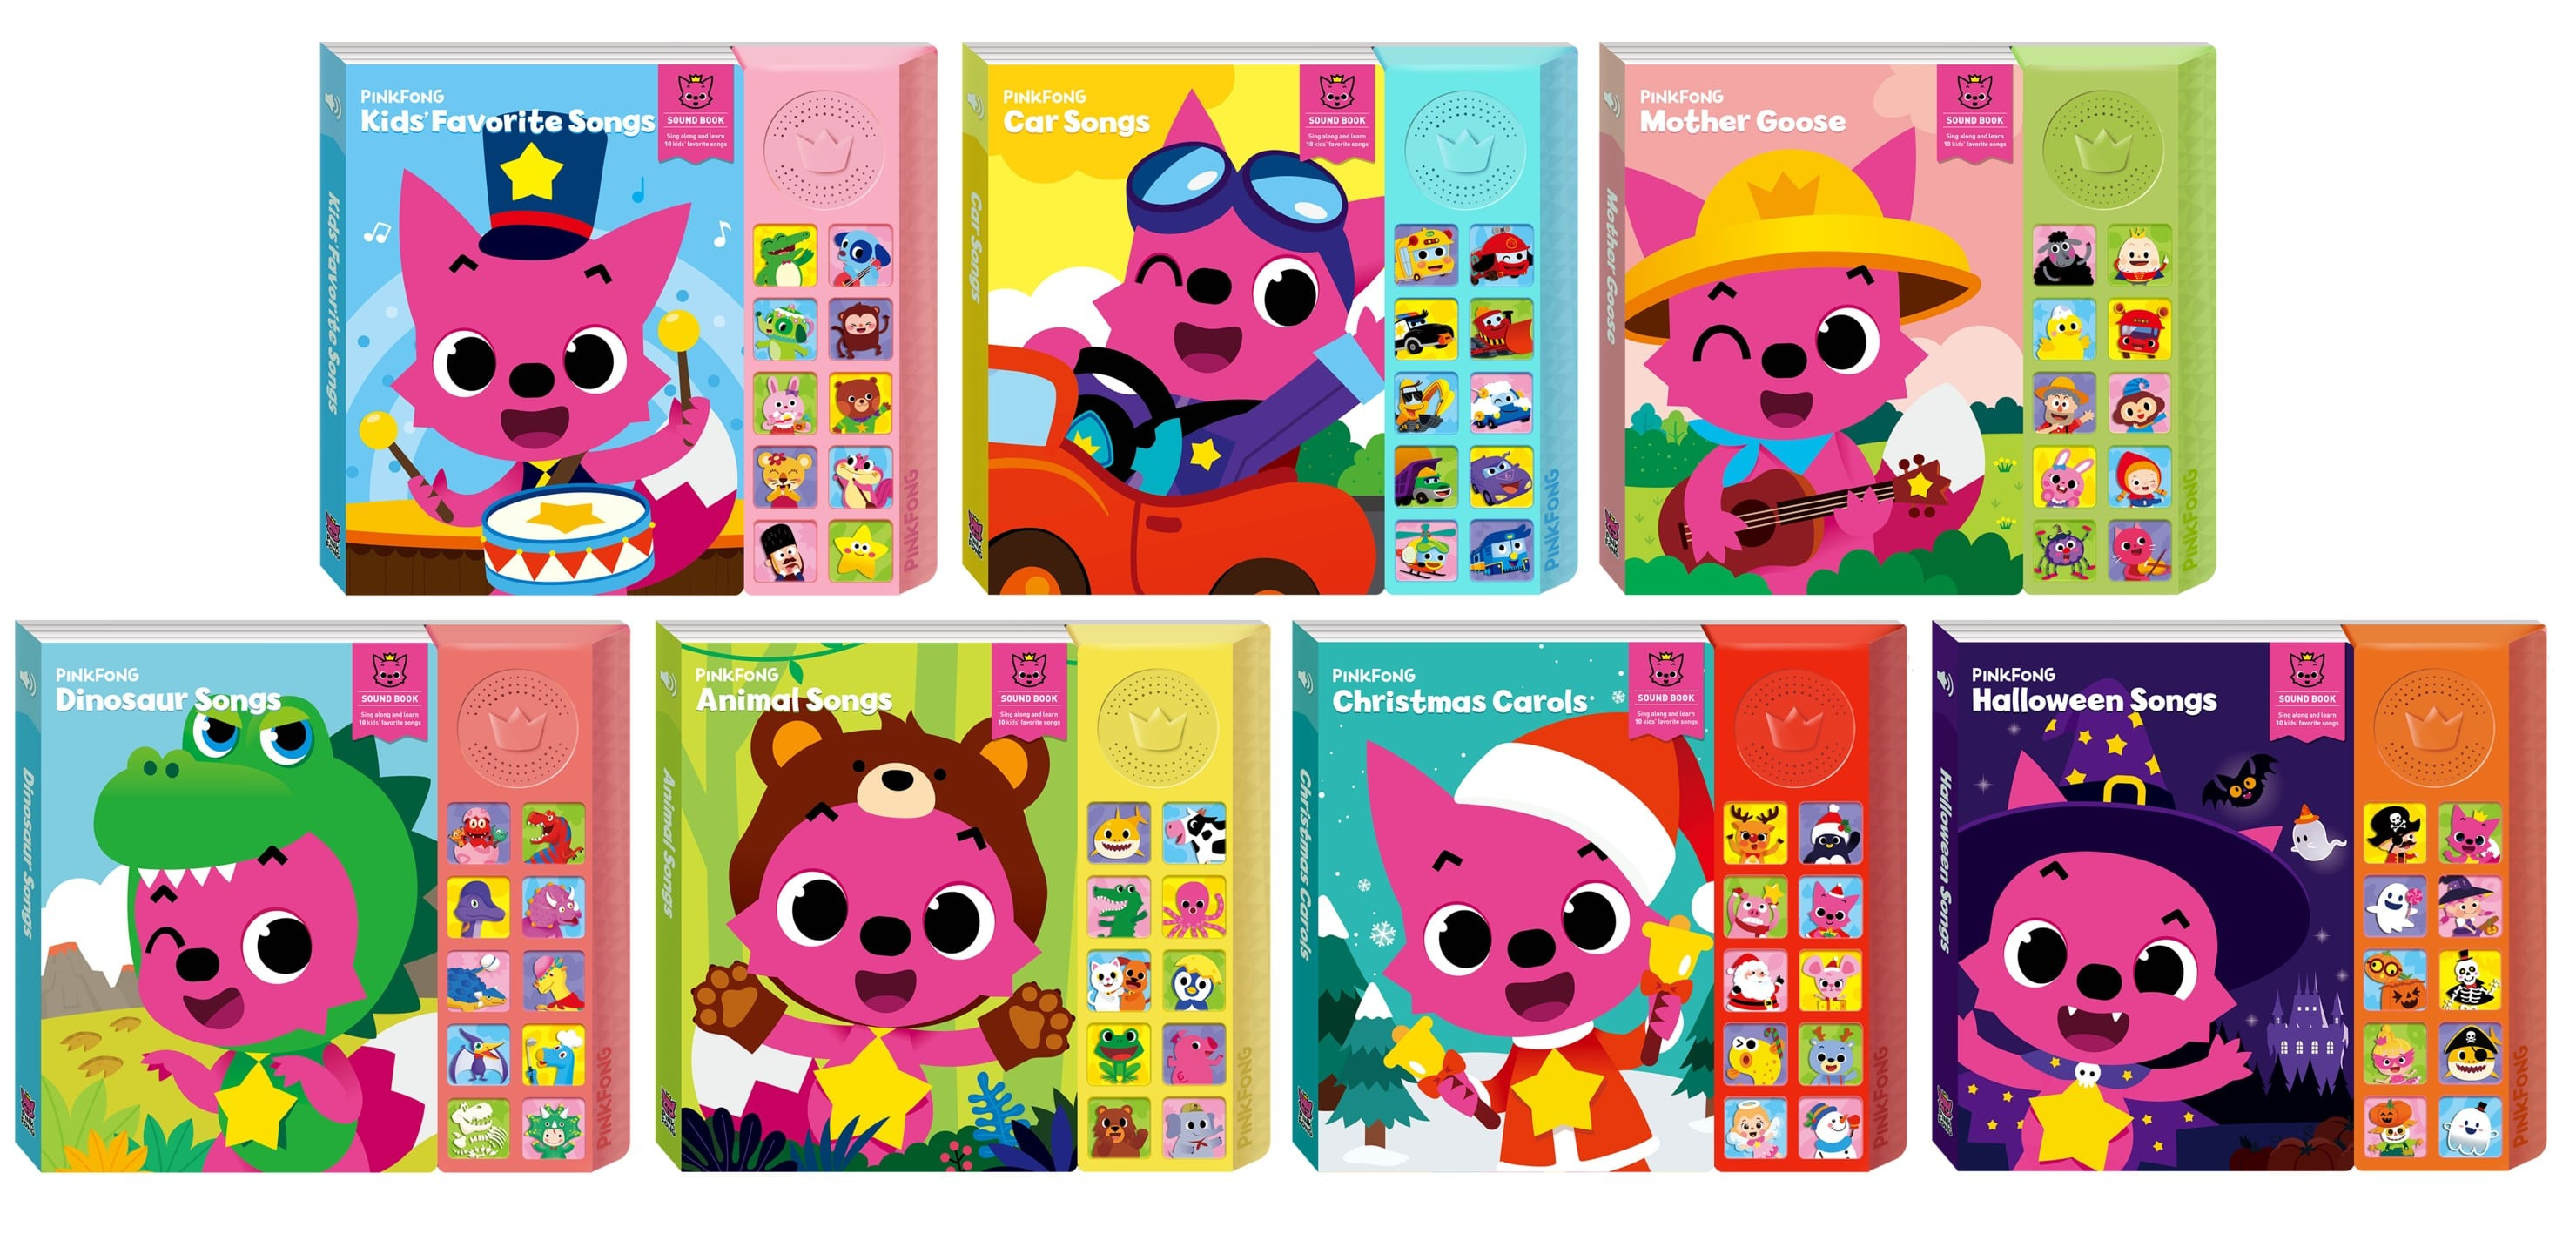 Pinkfong Sound Books 01